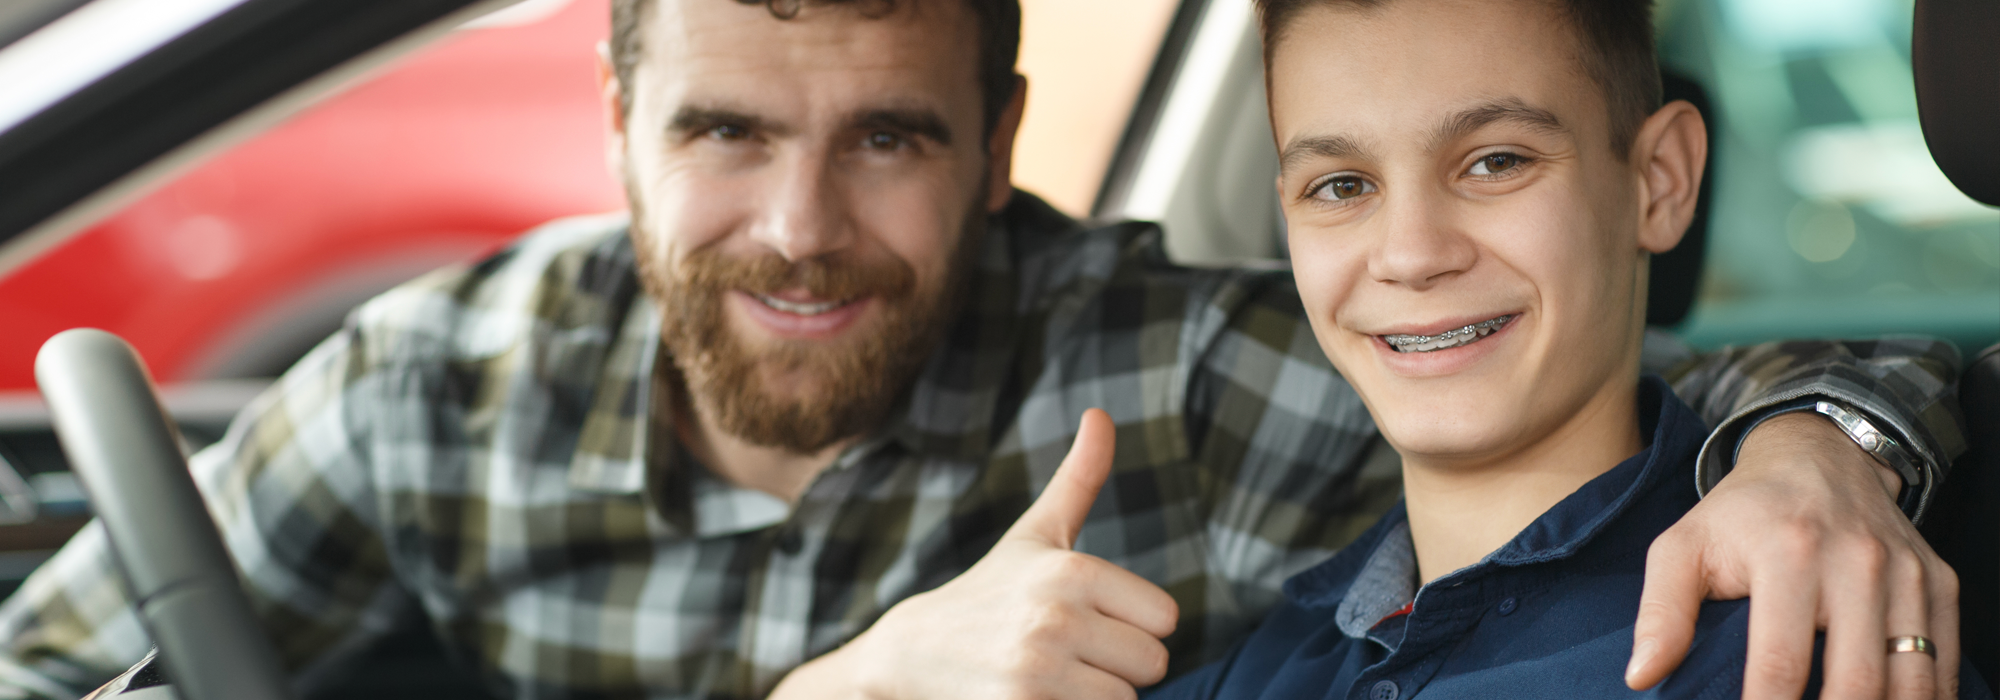 Teen giving thumbs up in drivers seat and dad in car.